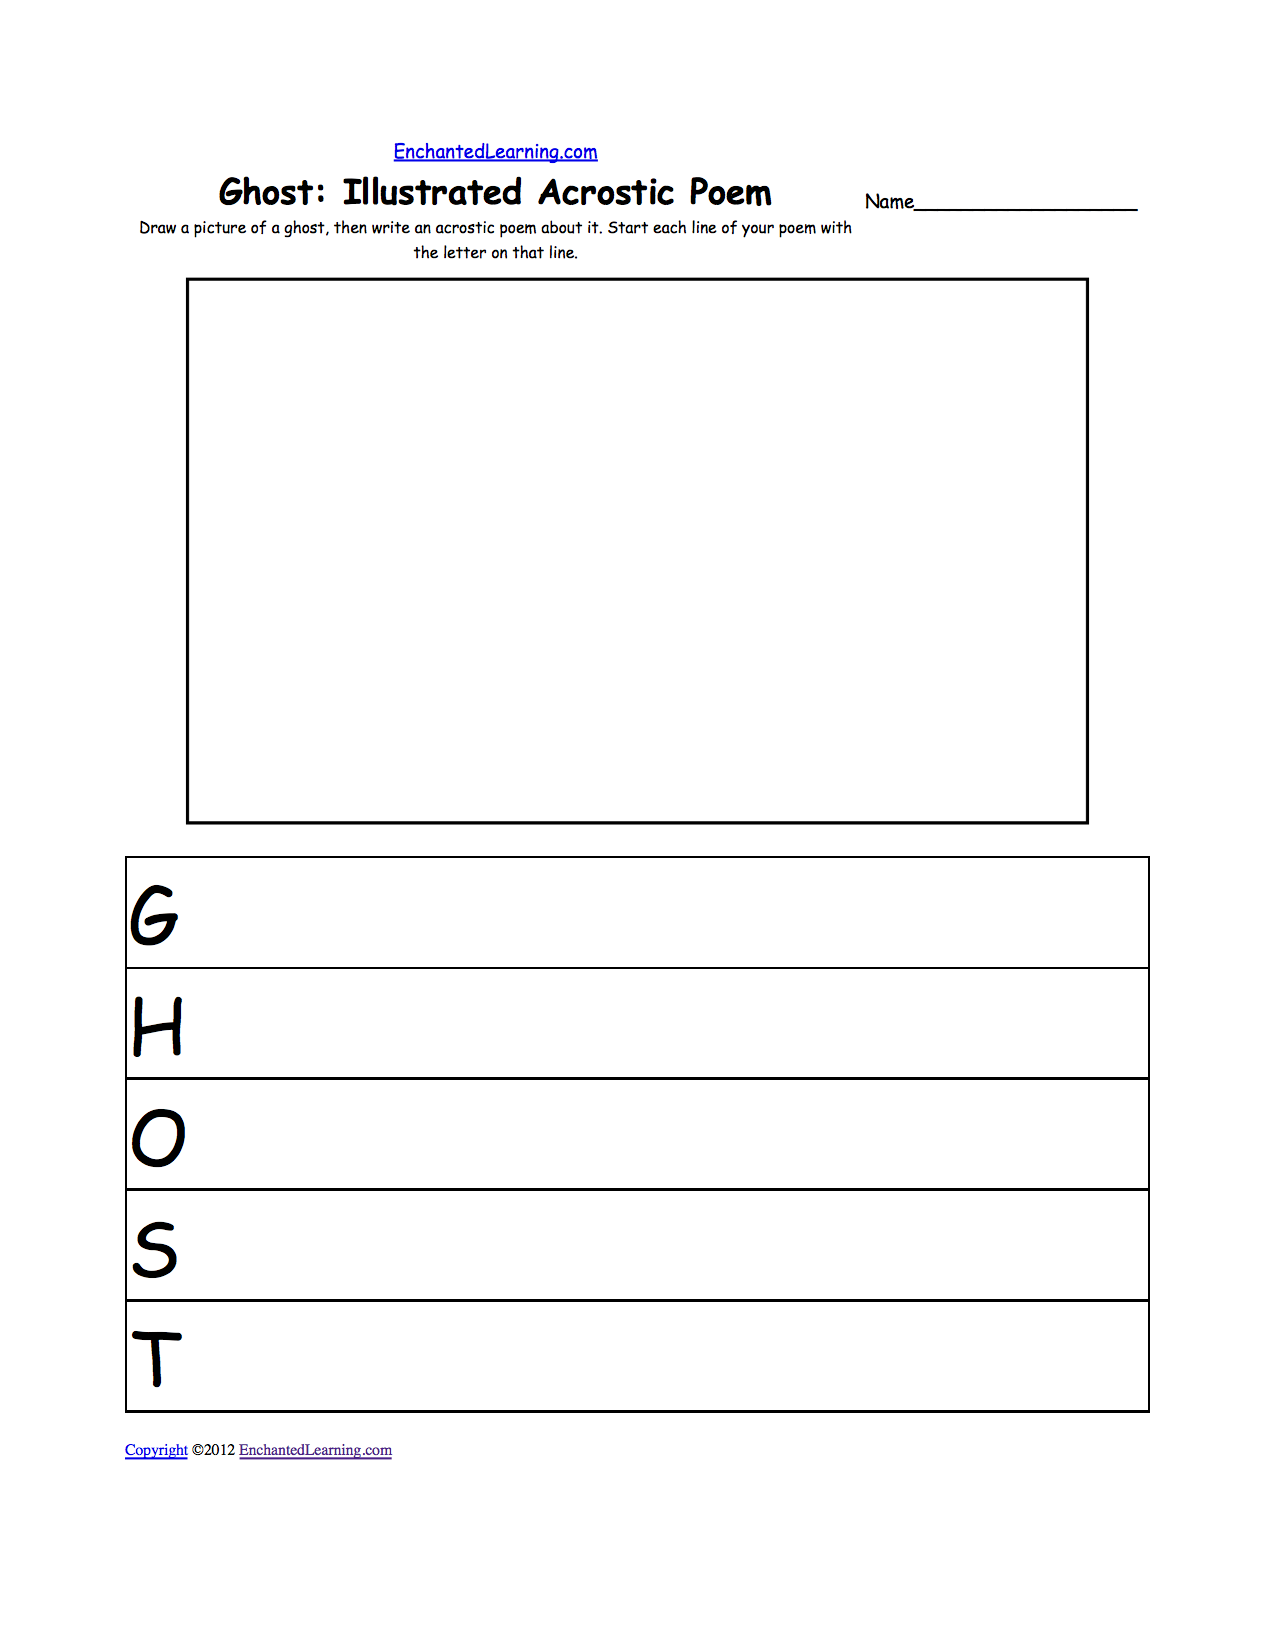 halloween activities writing worksheets com draw a picture of a ghost then write an acrostic poem about it start each line of your poem the letter on that line or go to